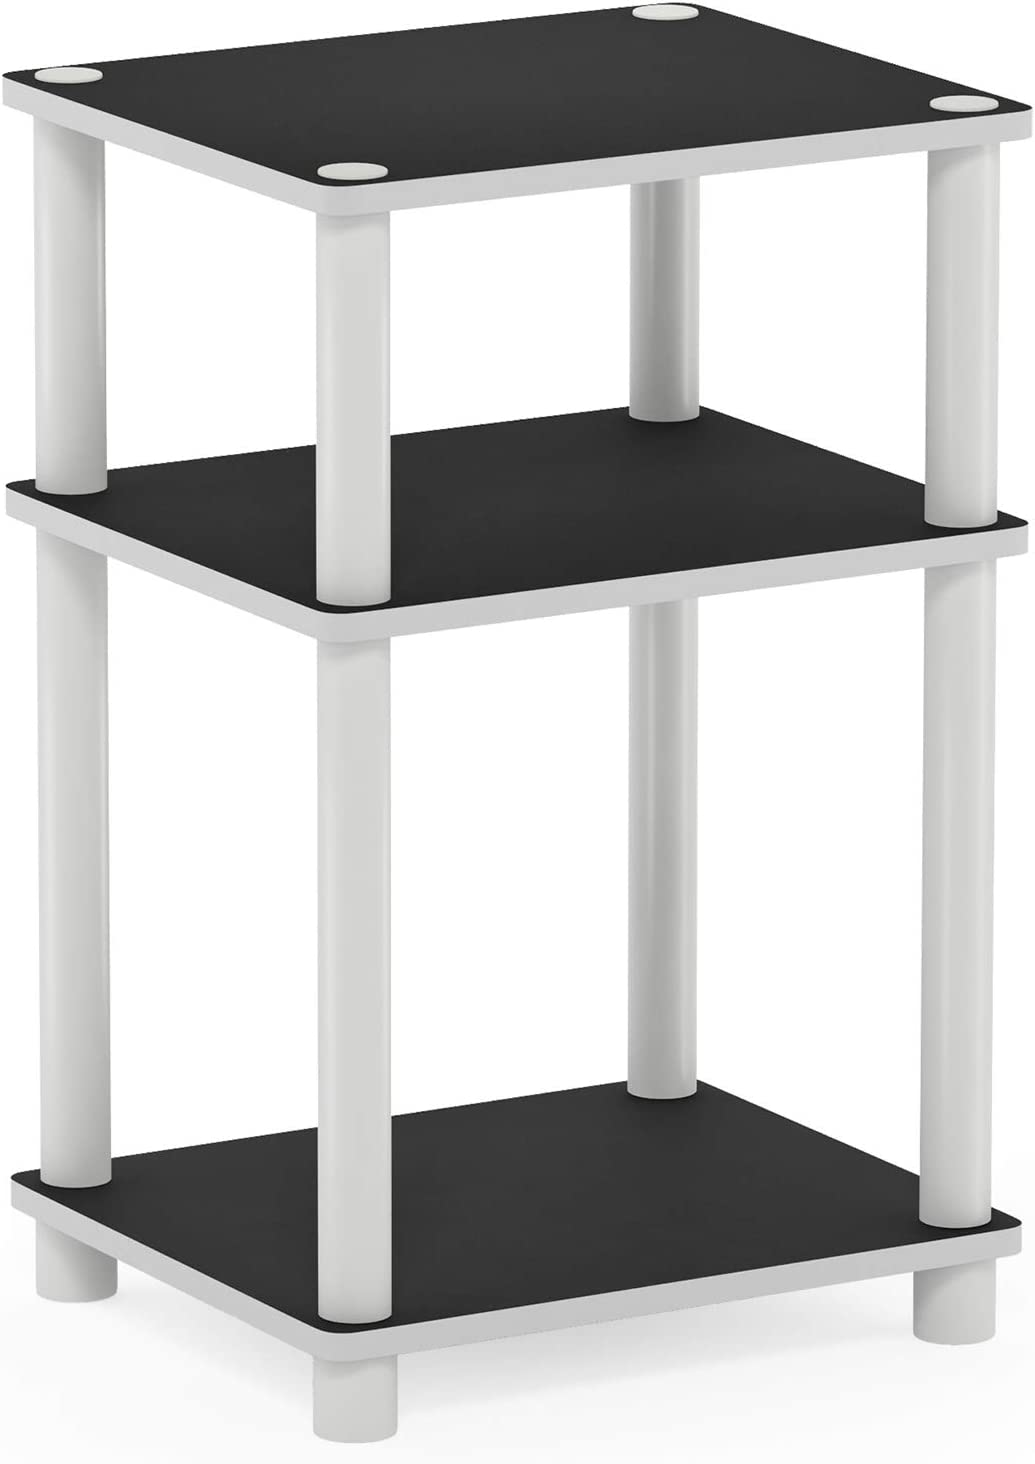 Amazon Com Furinno Just 3 Tier End Table 1 Pack White White 11087wh Ex Wh Furniture Decor